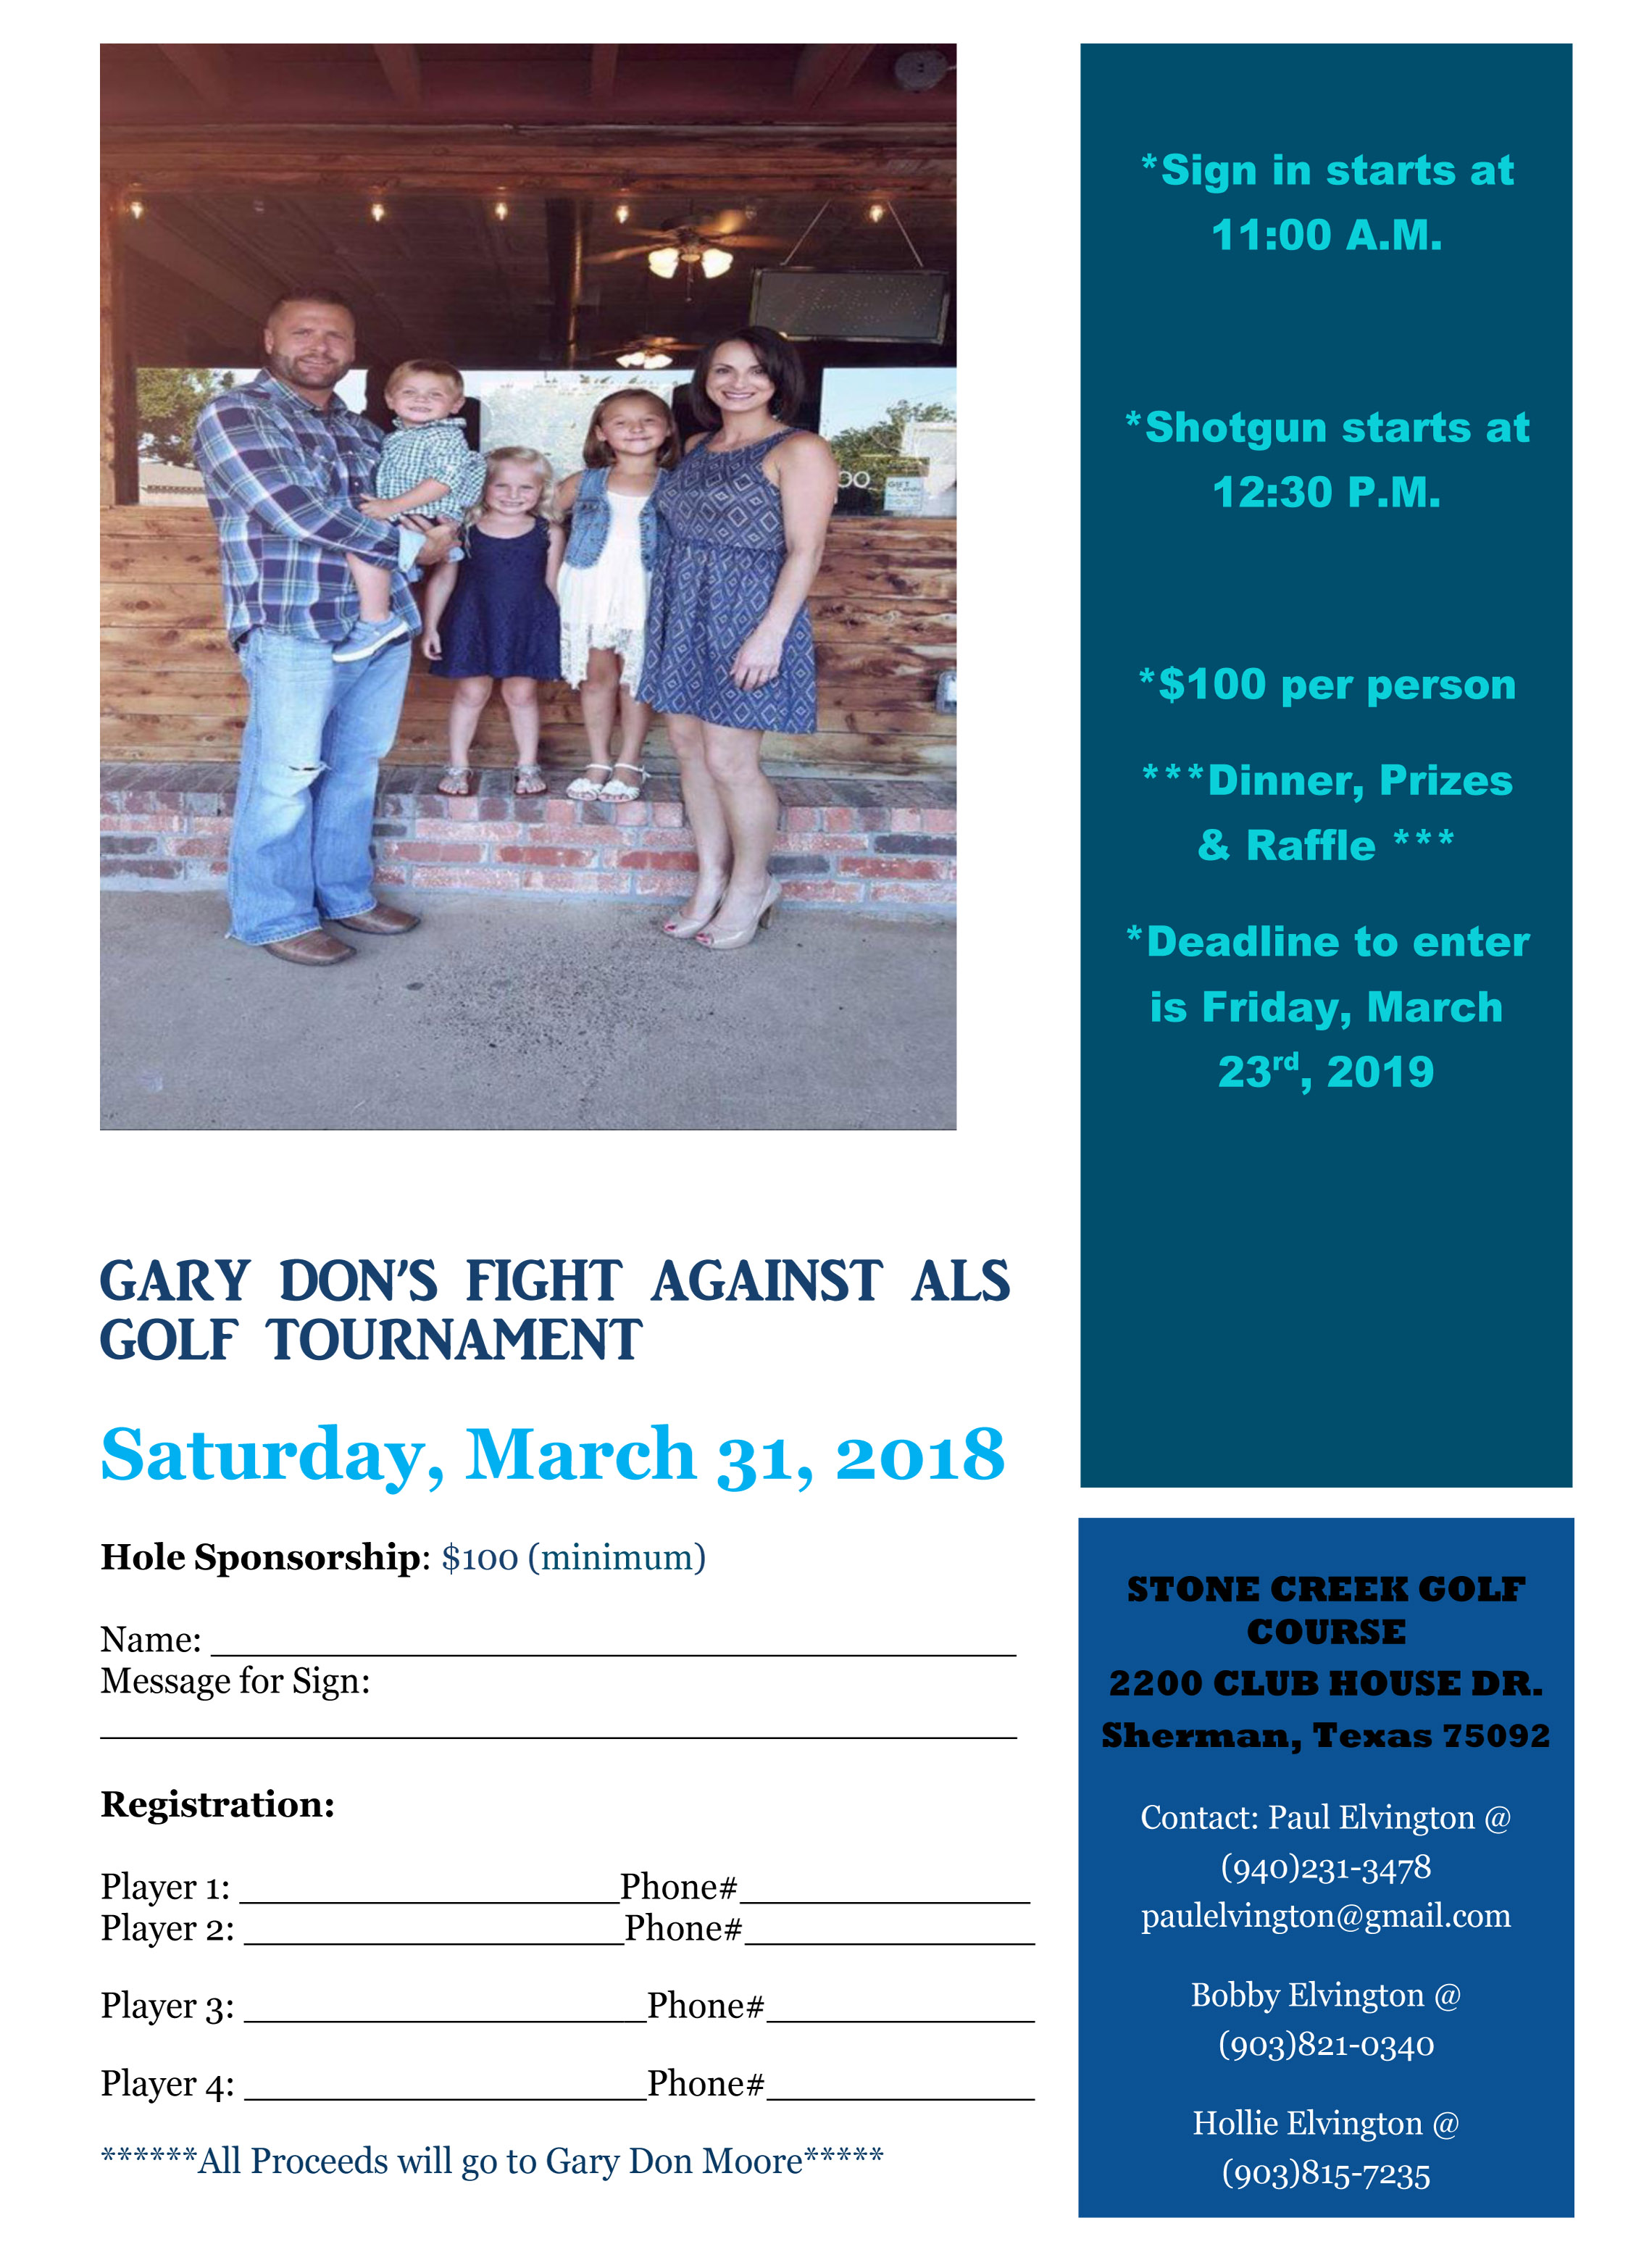 Gary Don golf tournament flyer.jpg